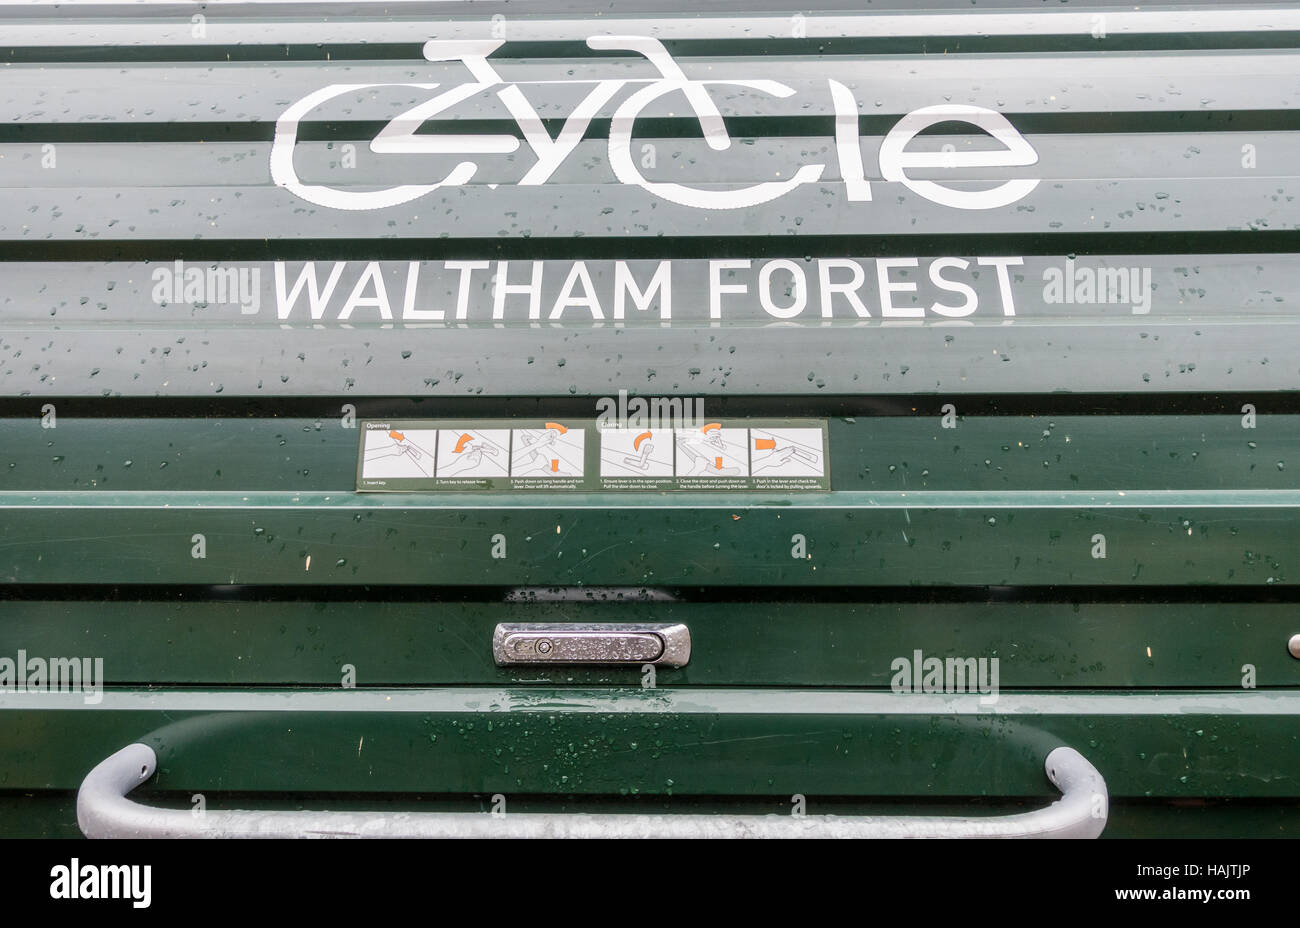 A bike hangar, on street secure storage rental scheme for bicycles in Waltham Forest, London Stock Photo